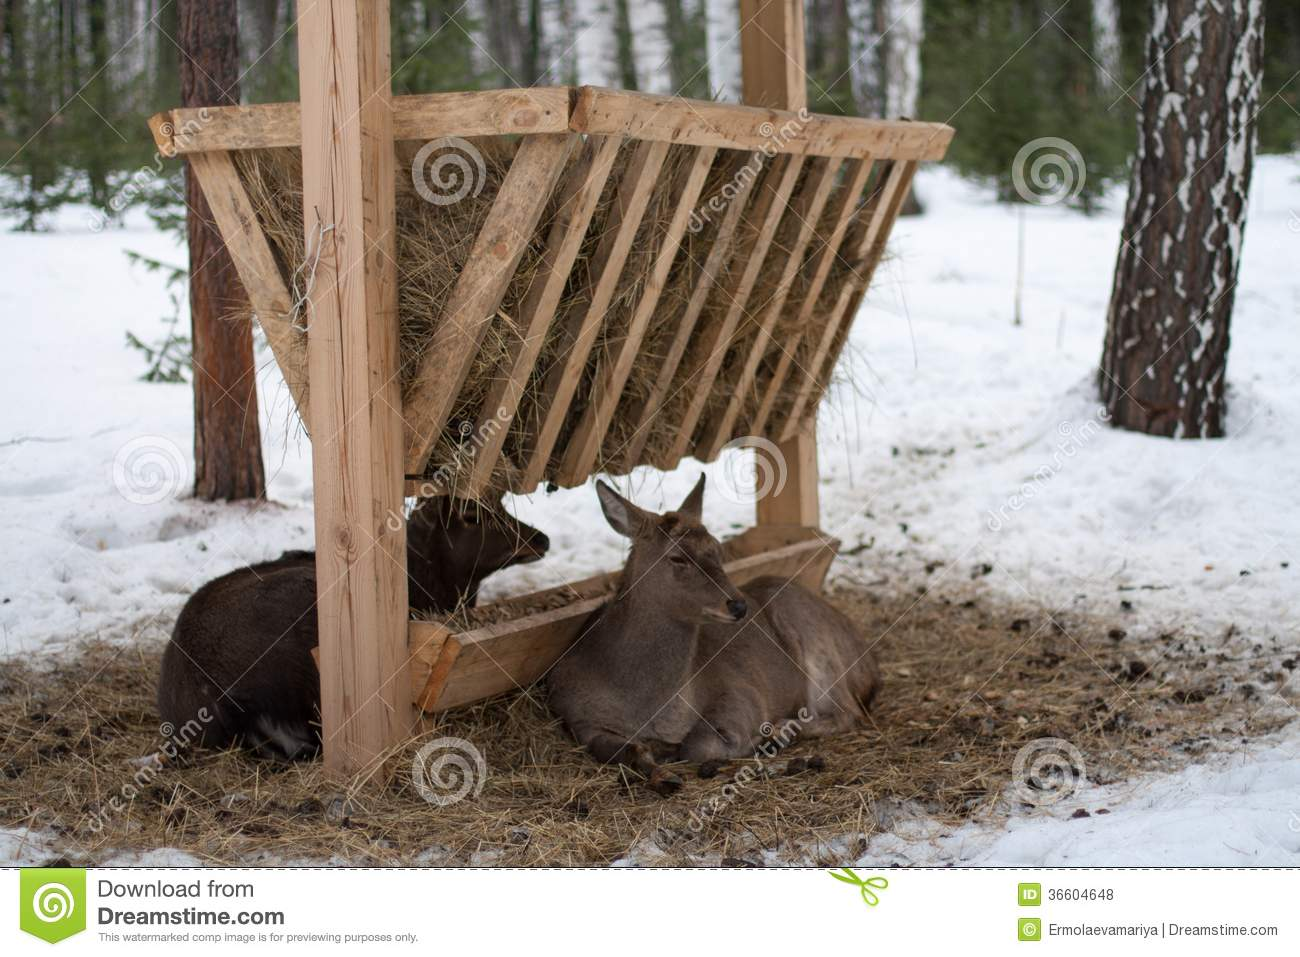 Stock Photo Farm House Birds Illustration Hen Duck Image33098170 in addition Ultimate Greenhouse further Custom Built Wooden Bbq Shelter further S1250e17 besides . on animal shelter building plans